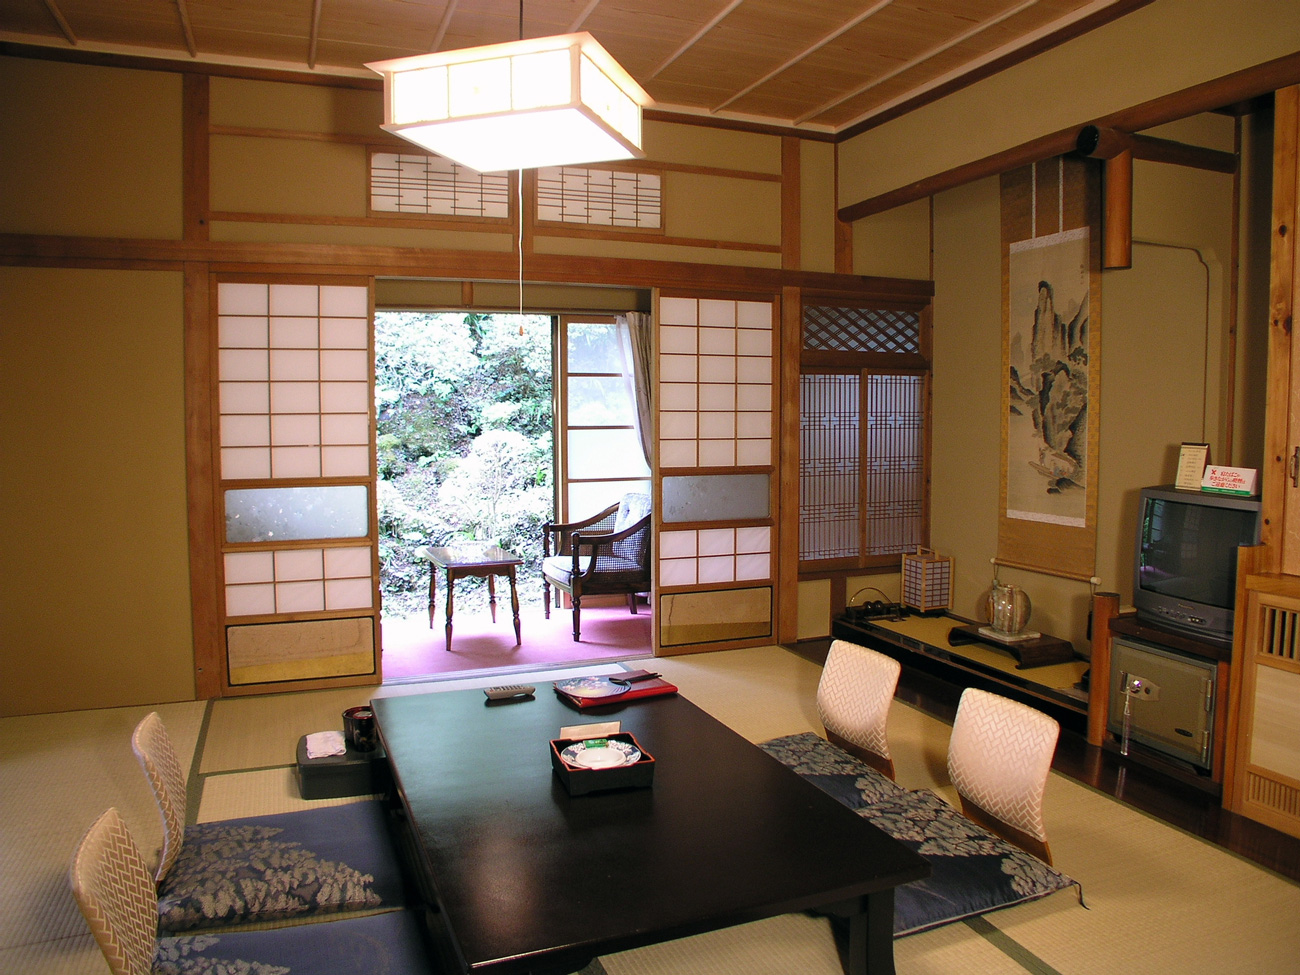 Bessho onsen ryokan tsuruya ueda nagano onsen ryokan with japanese atmosphere delicious meals - Japan small room design ...